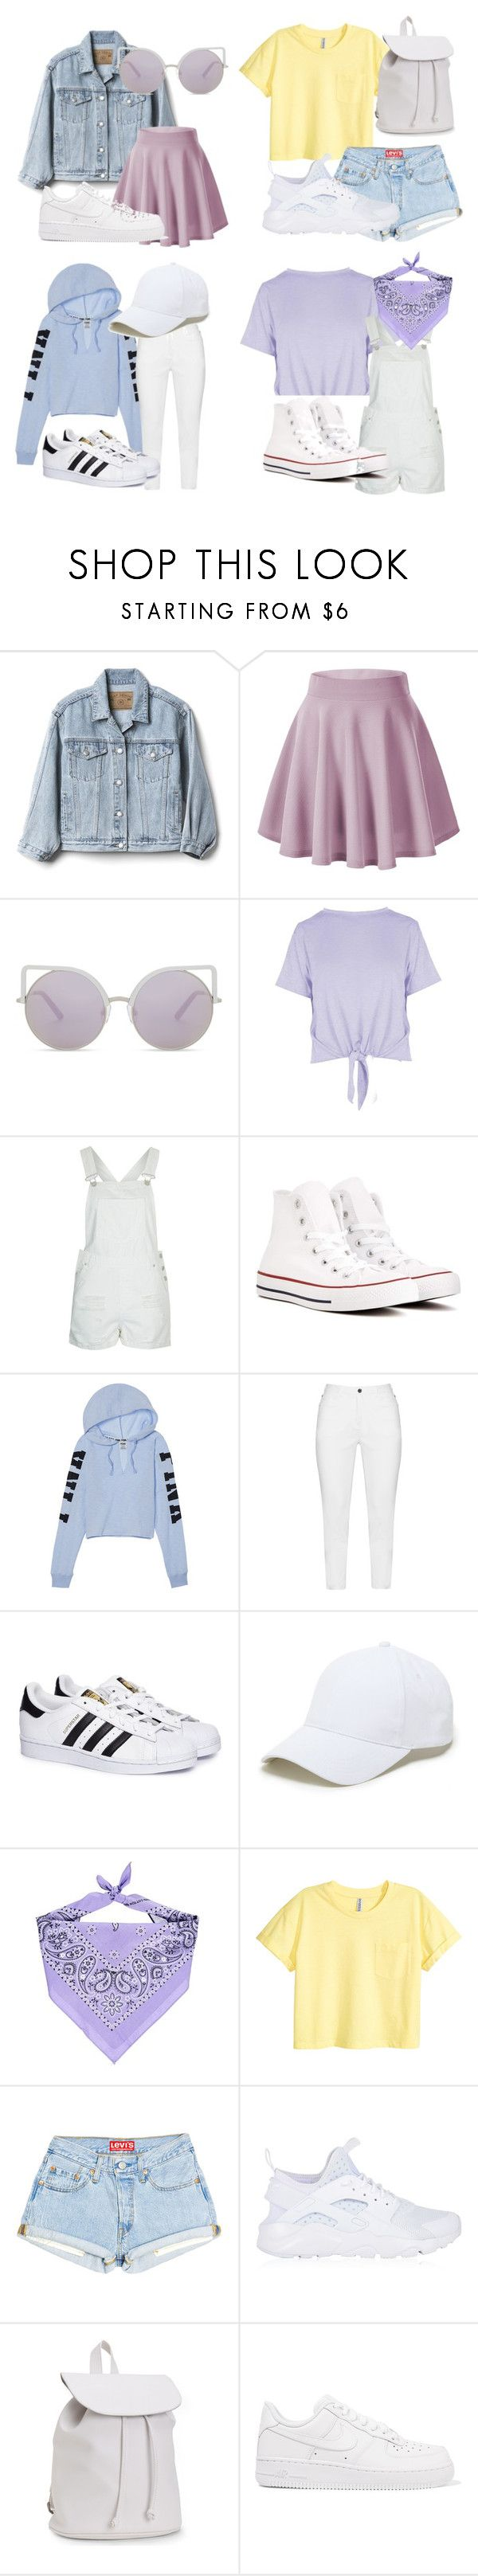 """""""girl group 2 (Gfriend inspired)"""" by raloisio on Polyvore featuring Gap, Matthew Williamson, Boohoo, Topshop, Converse, Zhenzi, adidas, Sole Society, Forever 21 and NIKE"""